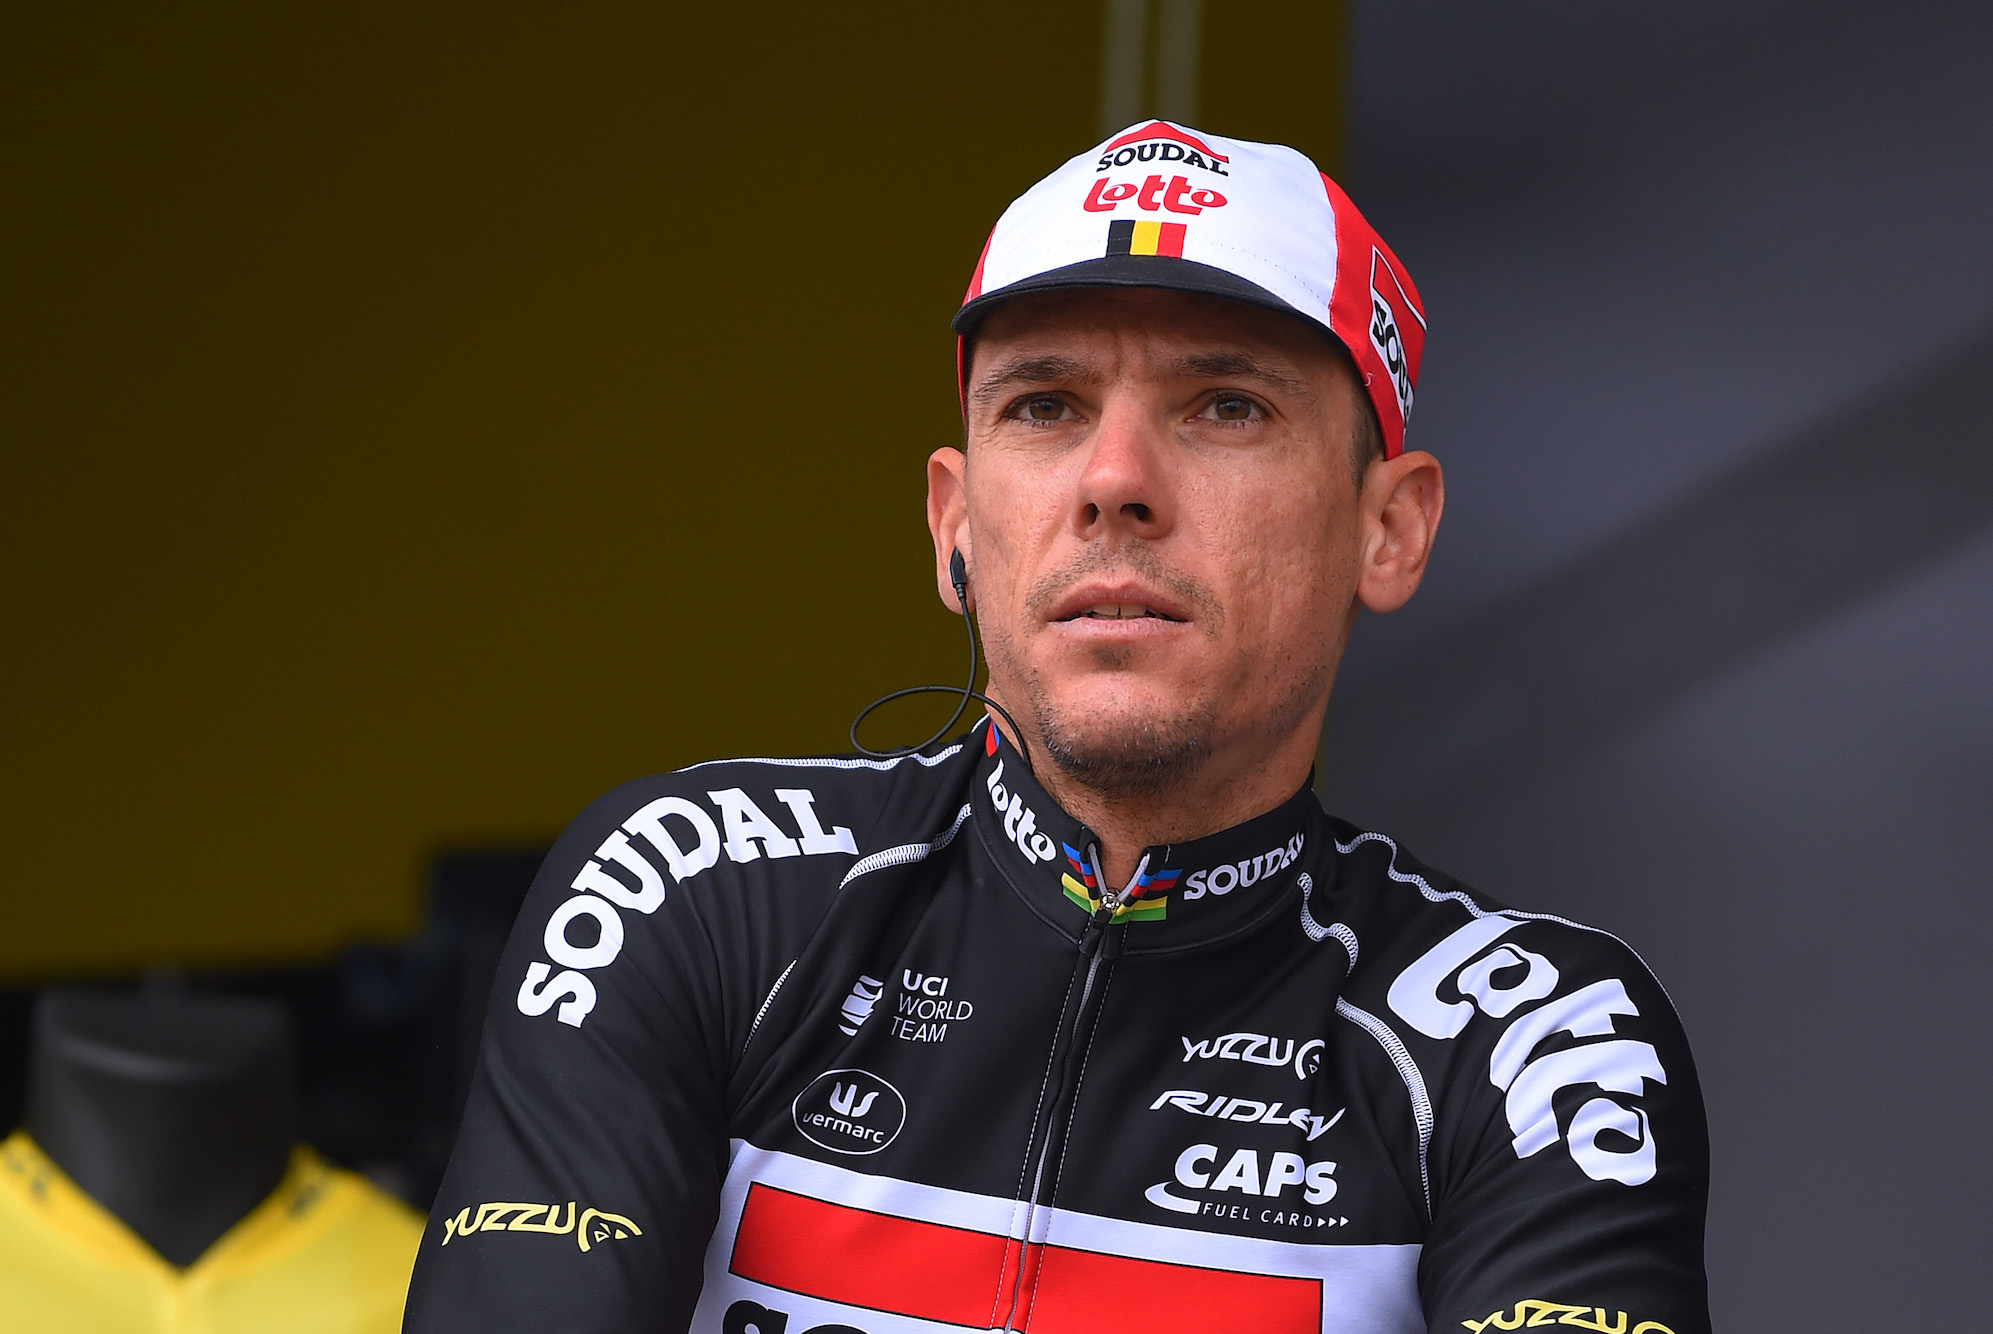 Philippe Gilbert takes Côte de La Redoute KoM while filming a documentary - Cycling Weekly